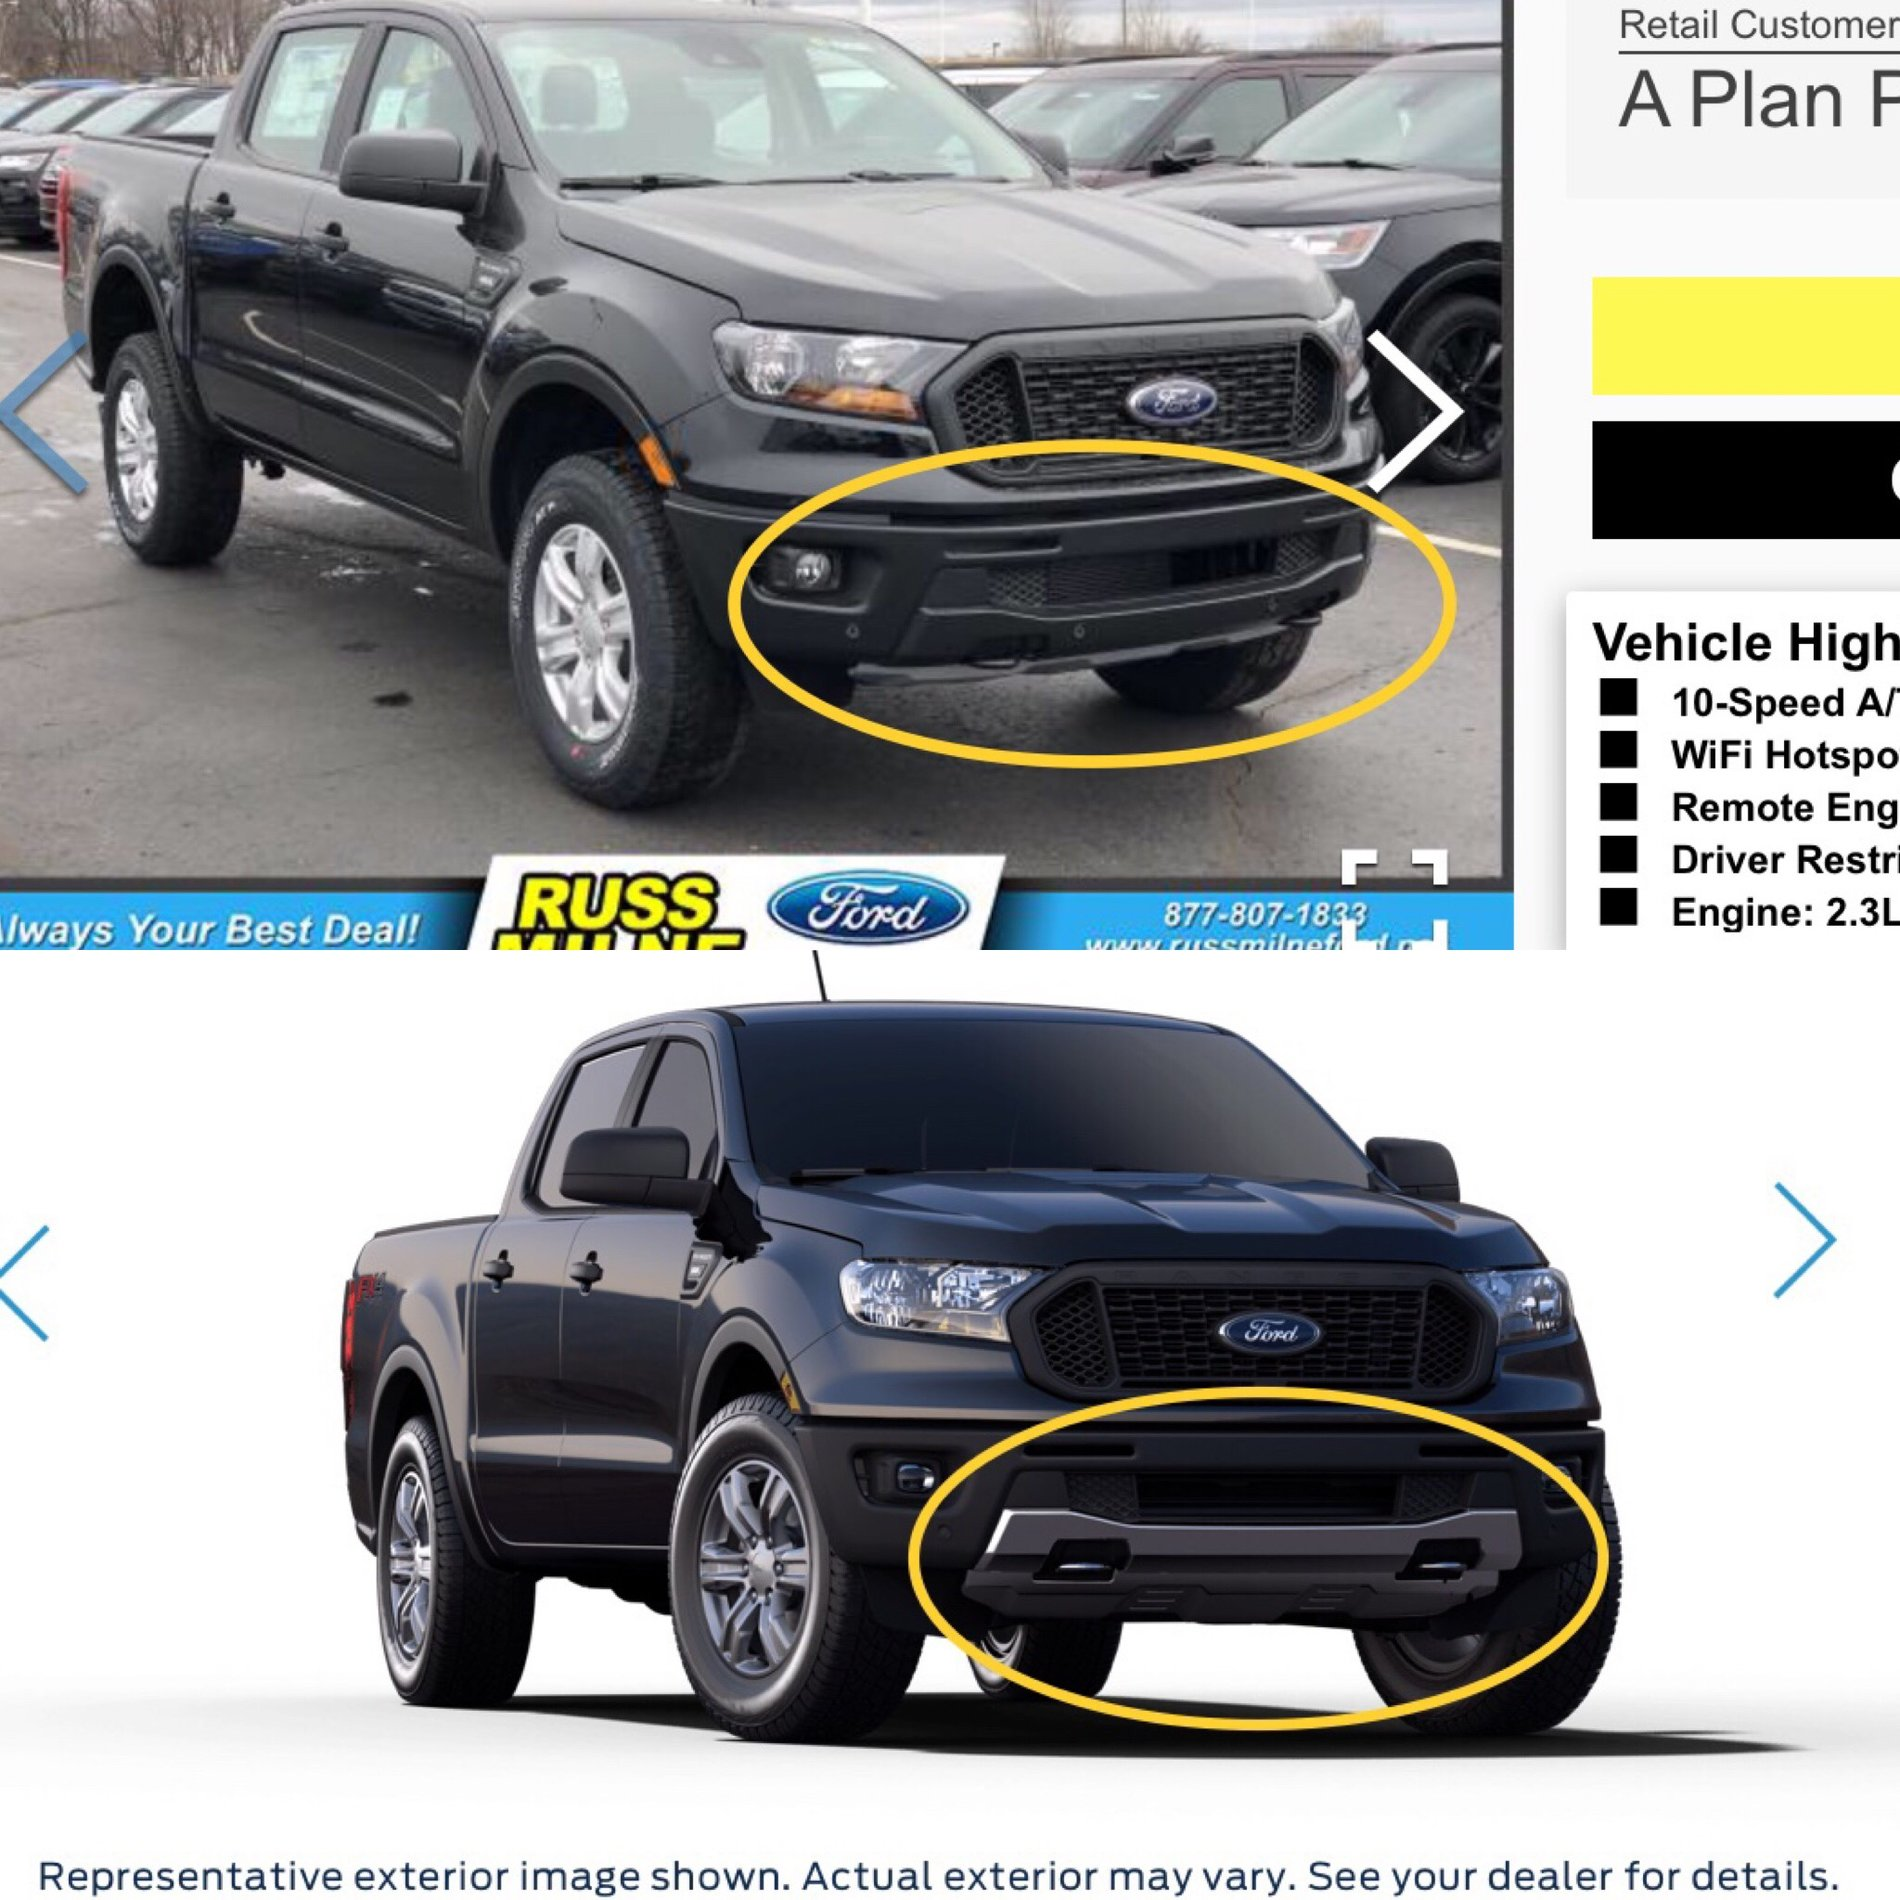 FX4 Front Valance Covers on Different Trims | 2019+ Ford